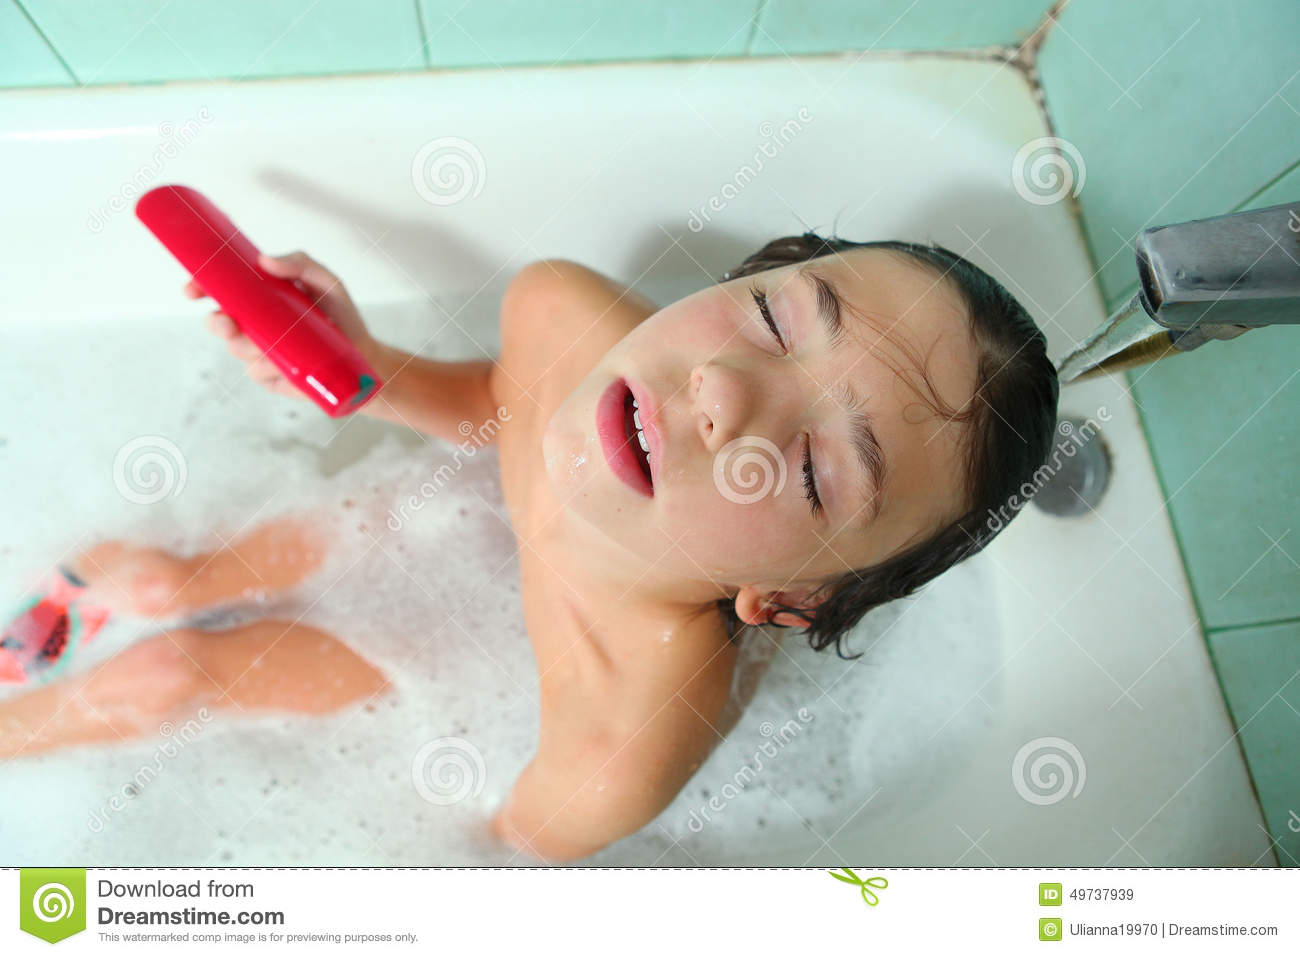 boy bath Teen